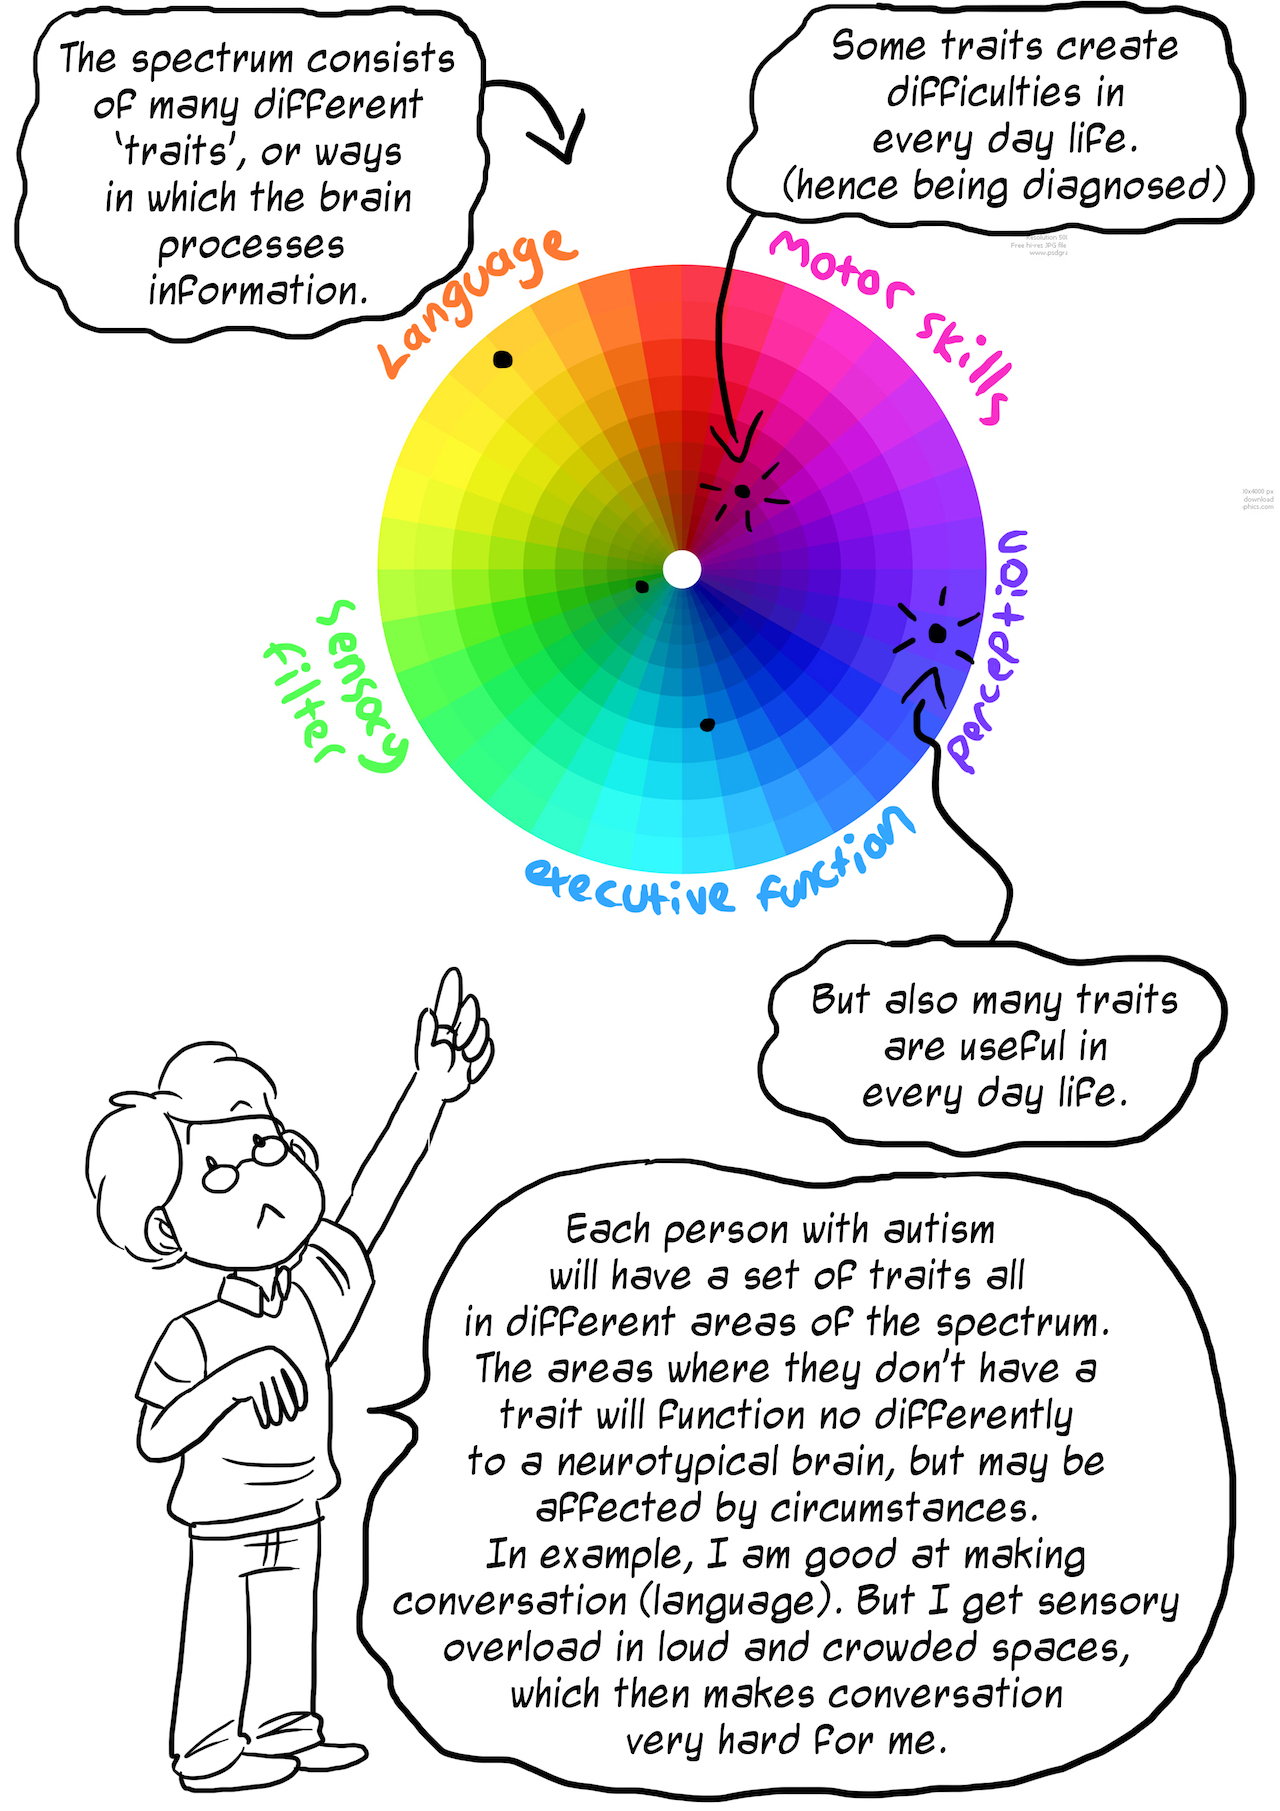 further explanation of how to think of the autism spectrum